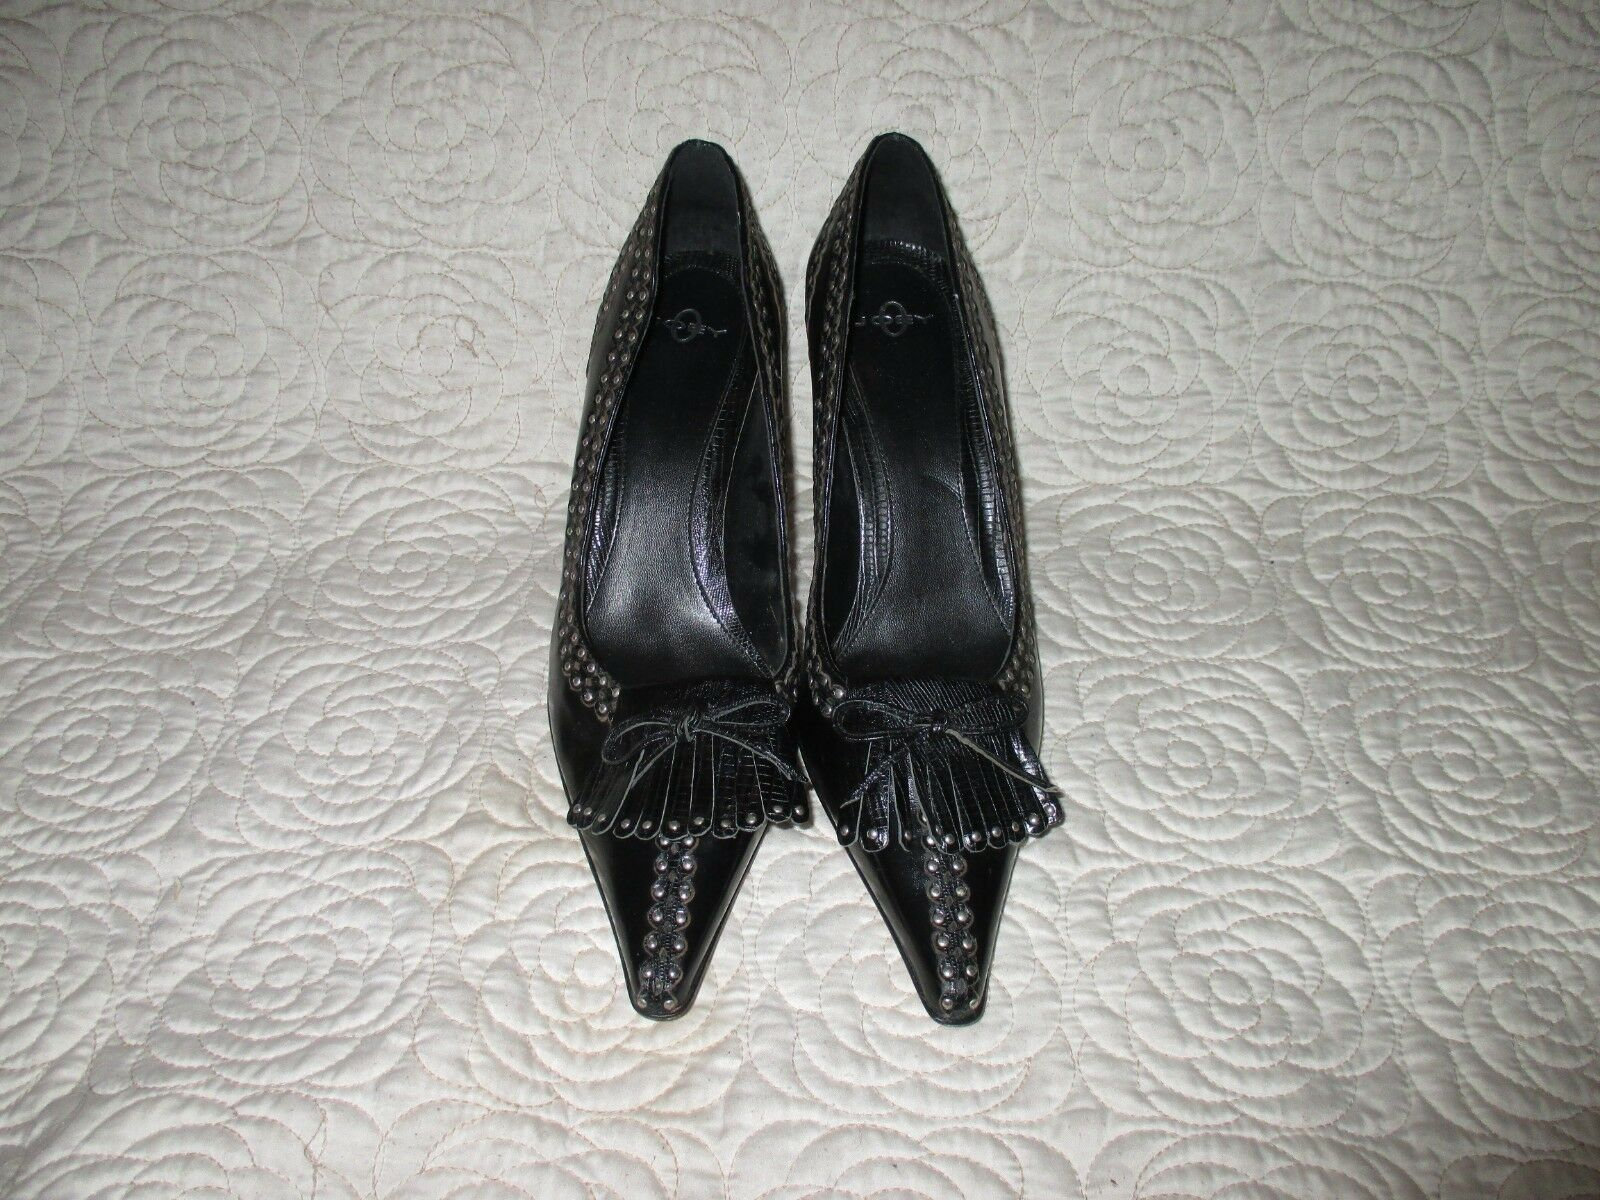 Joey O Pointed Toe Pumps with studs  SIZE 10 M -  945.